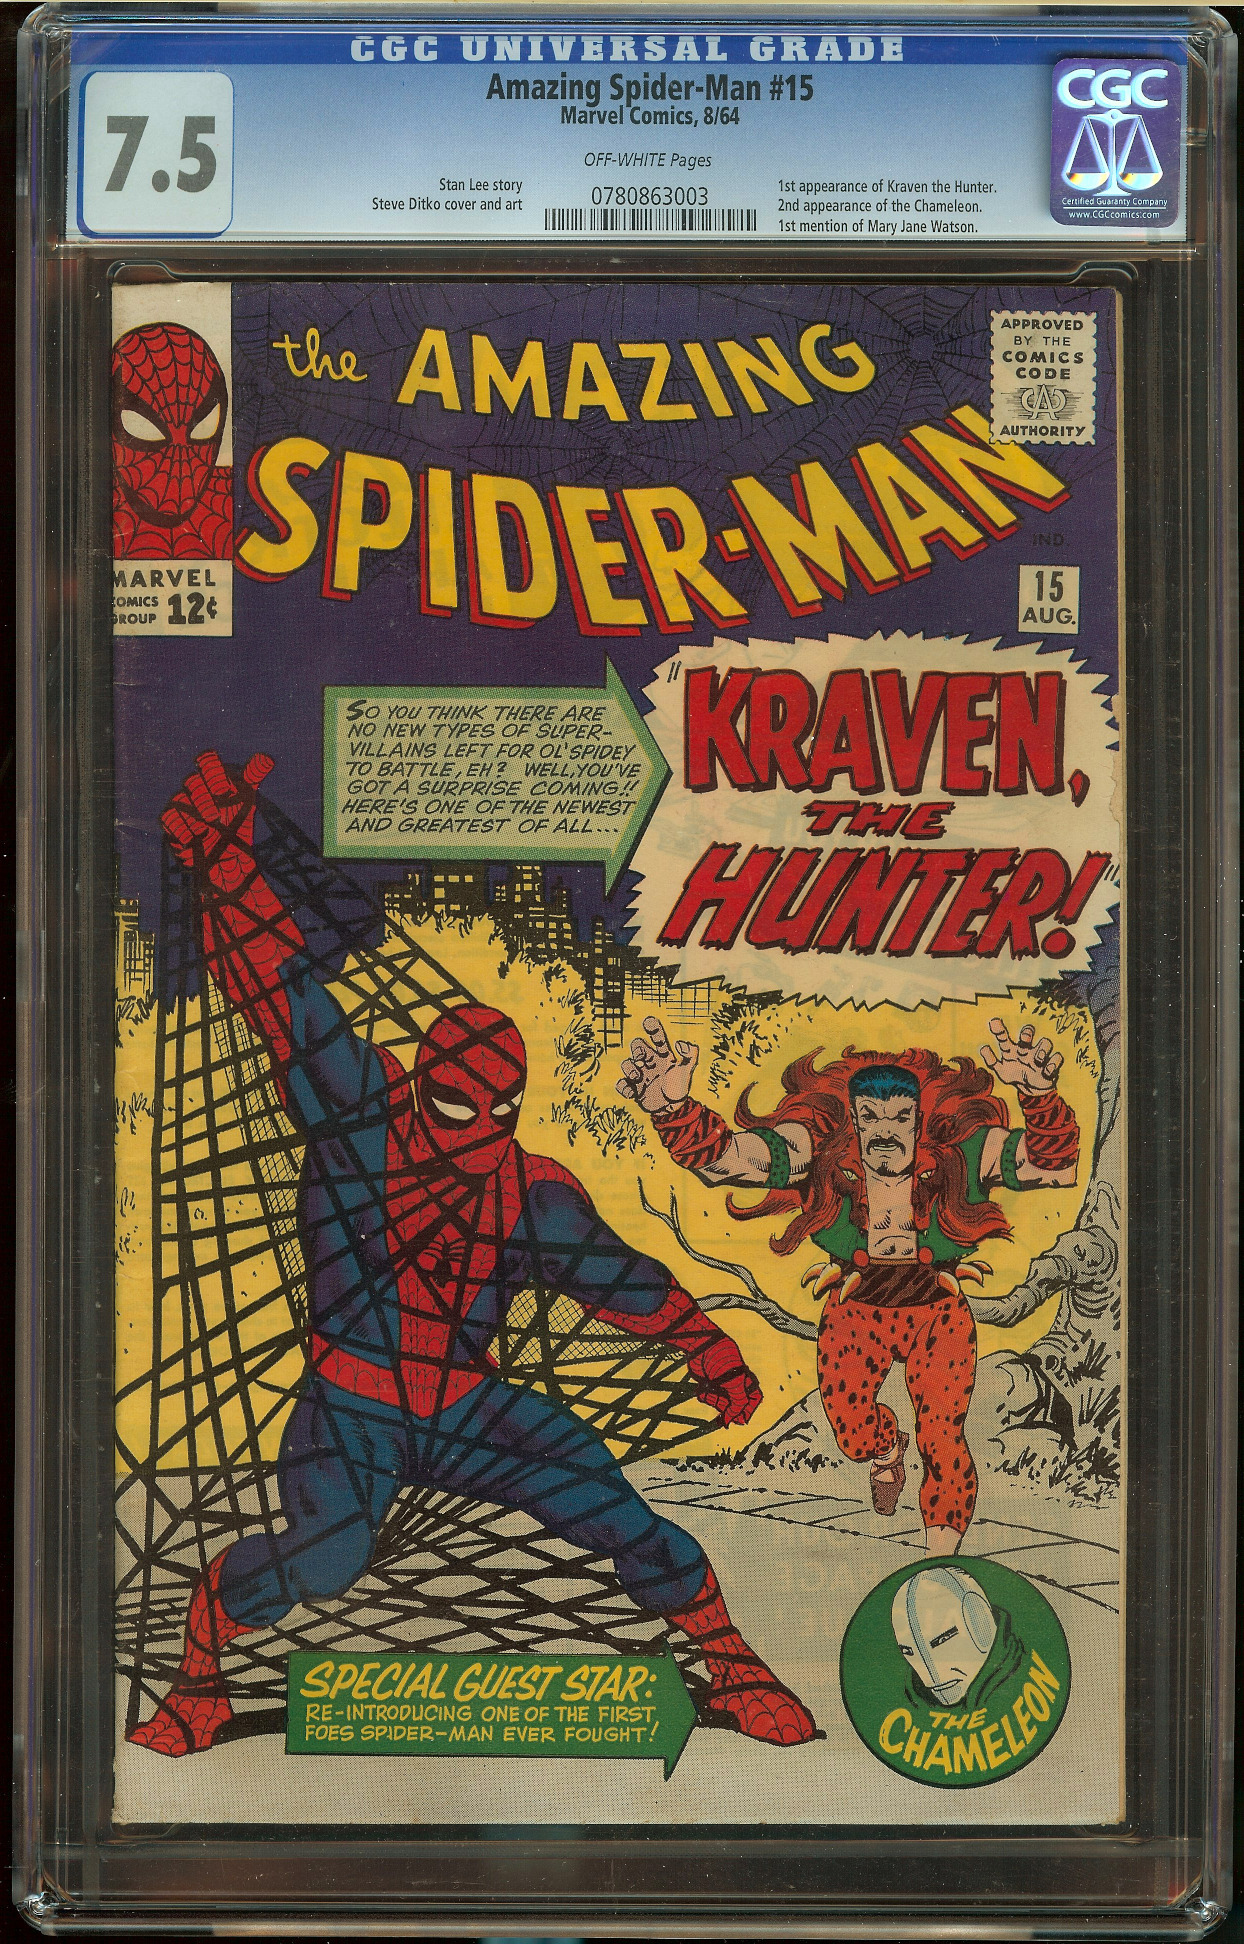 Amazing Spider-Man #15 CGC 7.5